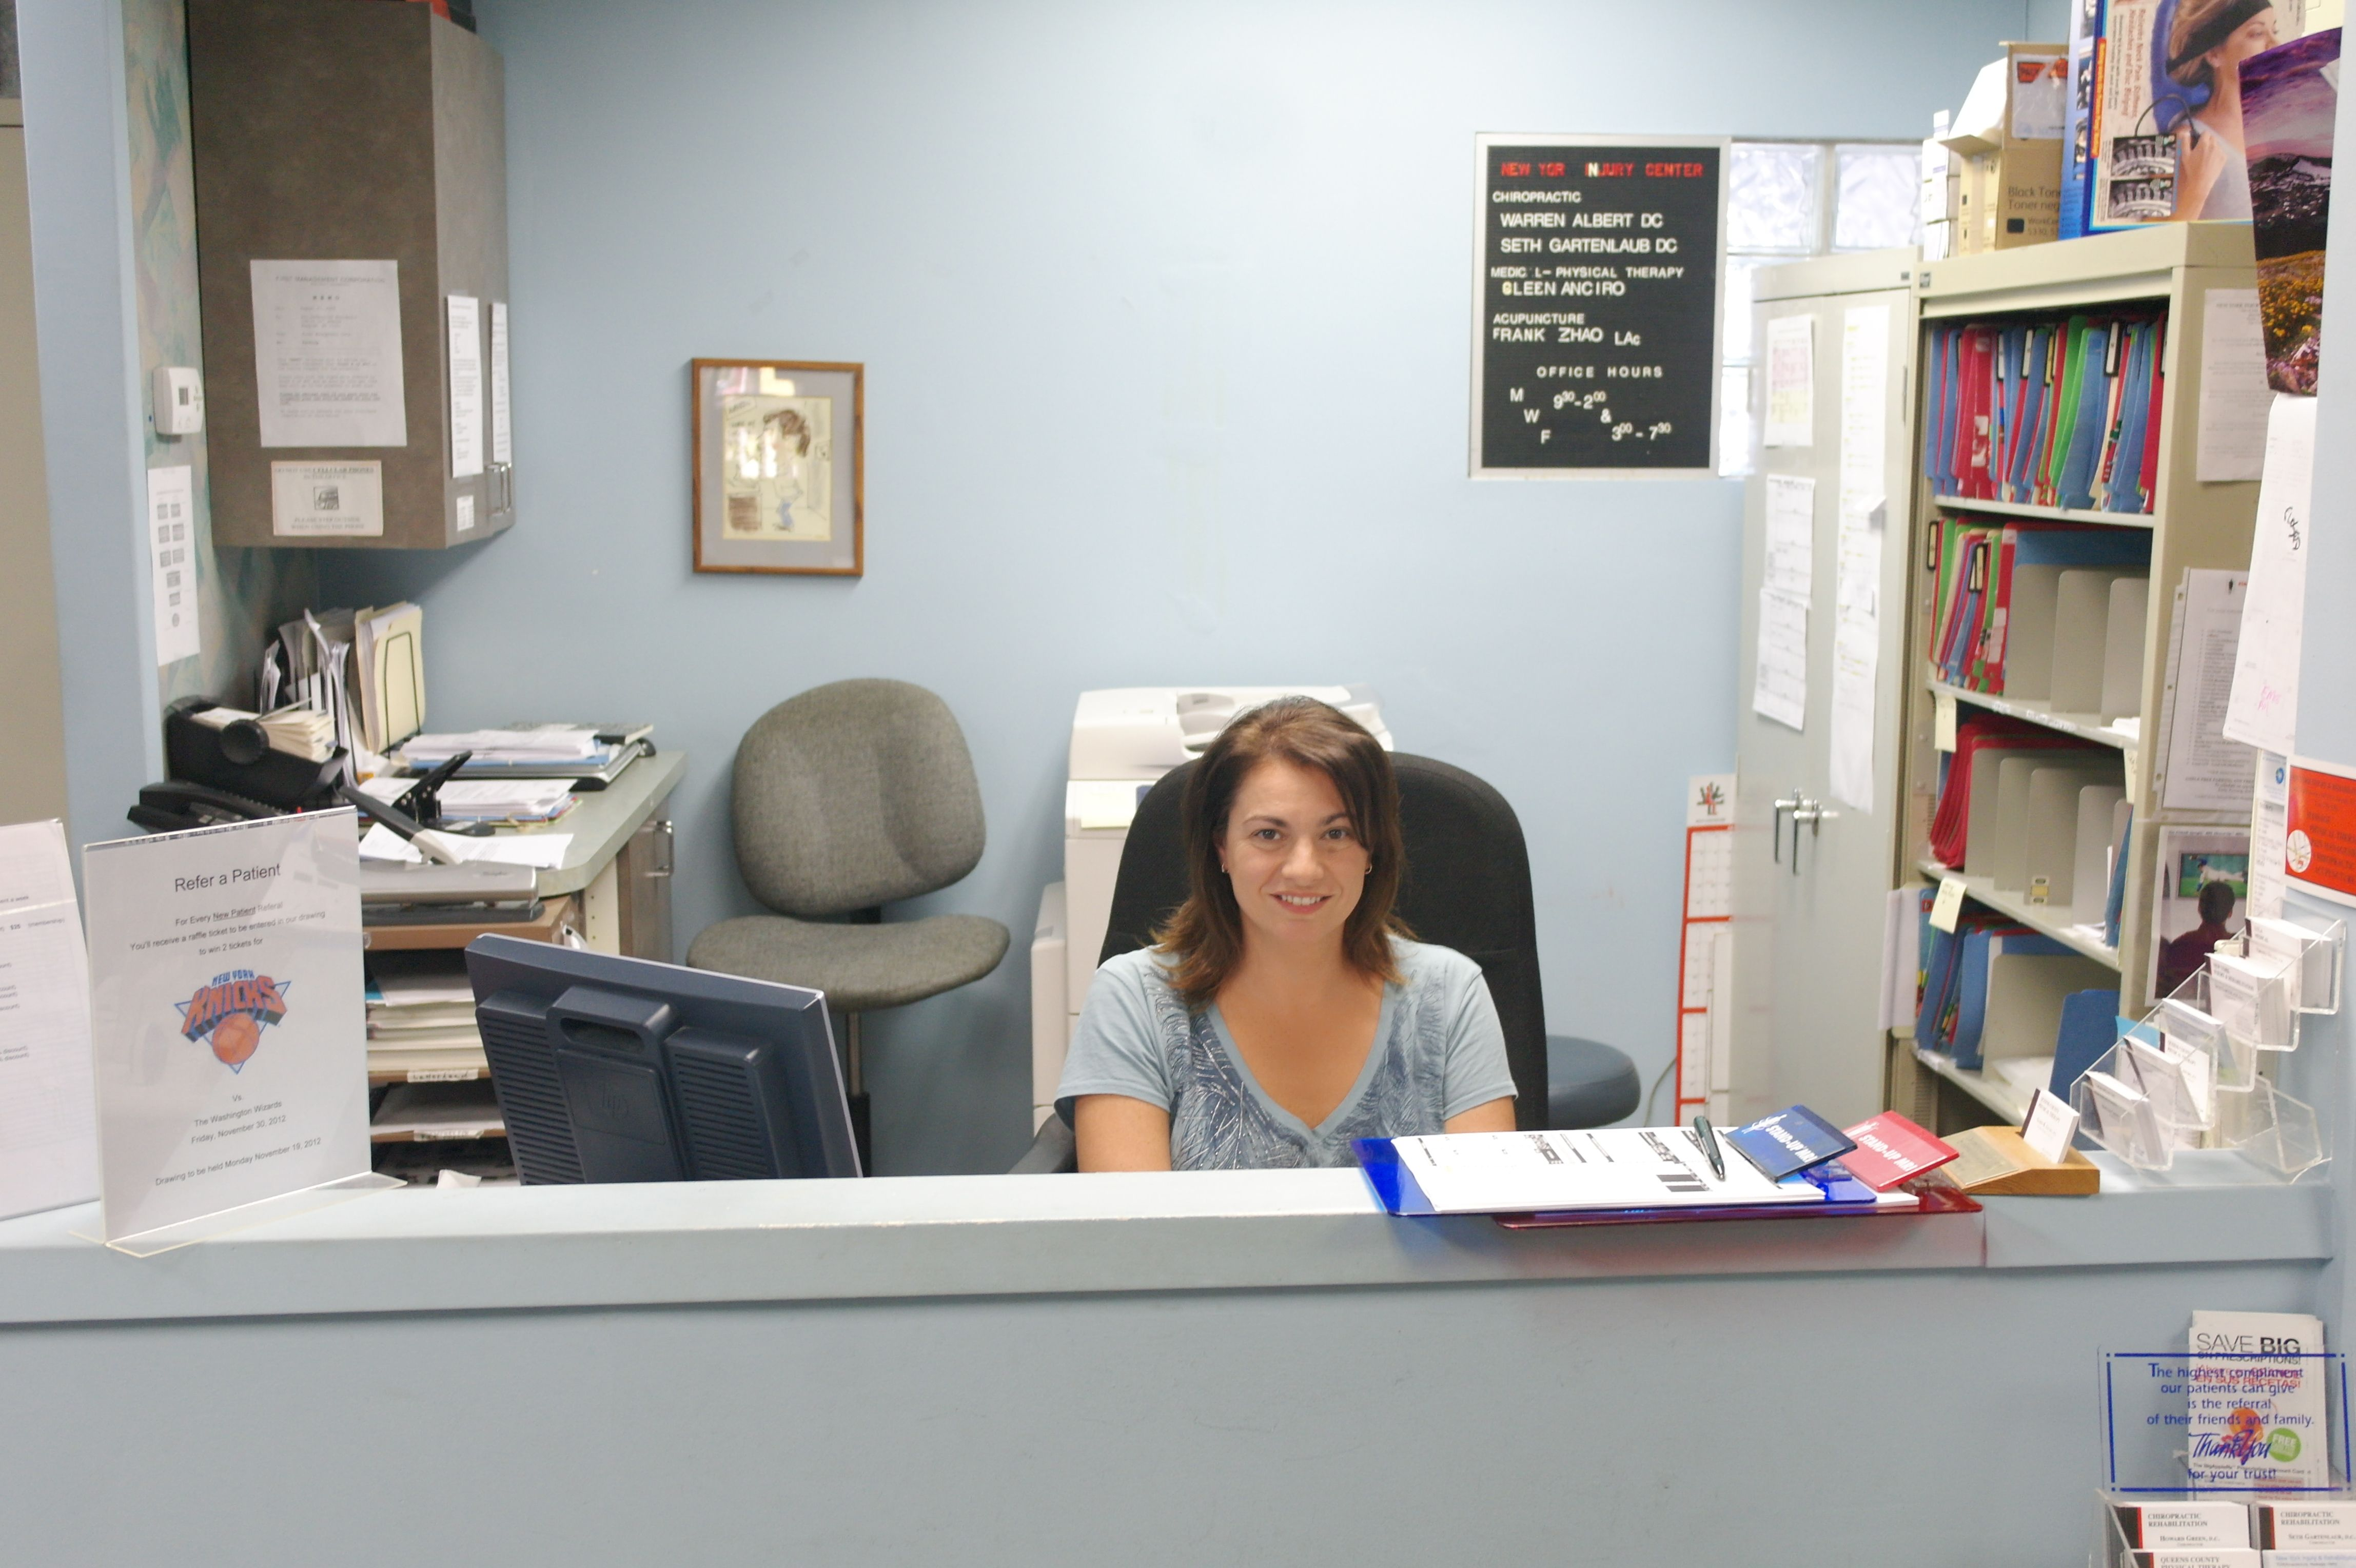 acupuncture office bayside queens nyc 11361 | Queens nyc ...